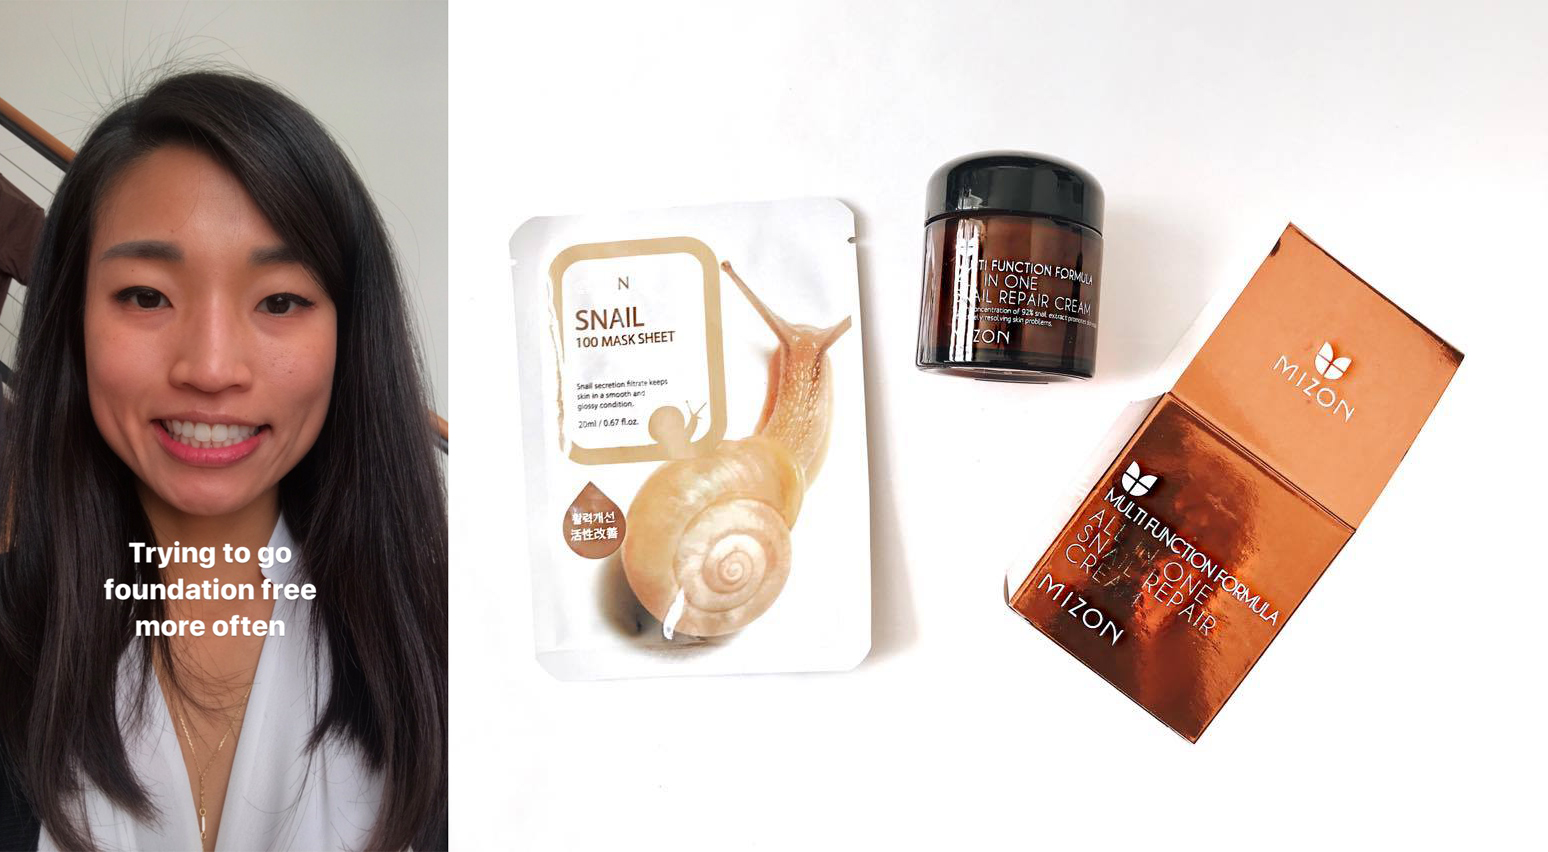 How Jen uses Mizon All-In-One Snail Repair Cream. From The Jen Project, a skincare blog for lazy people.